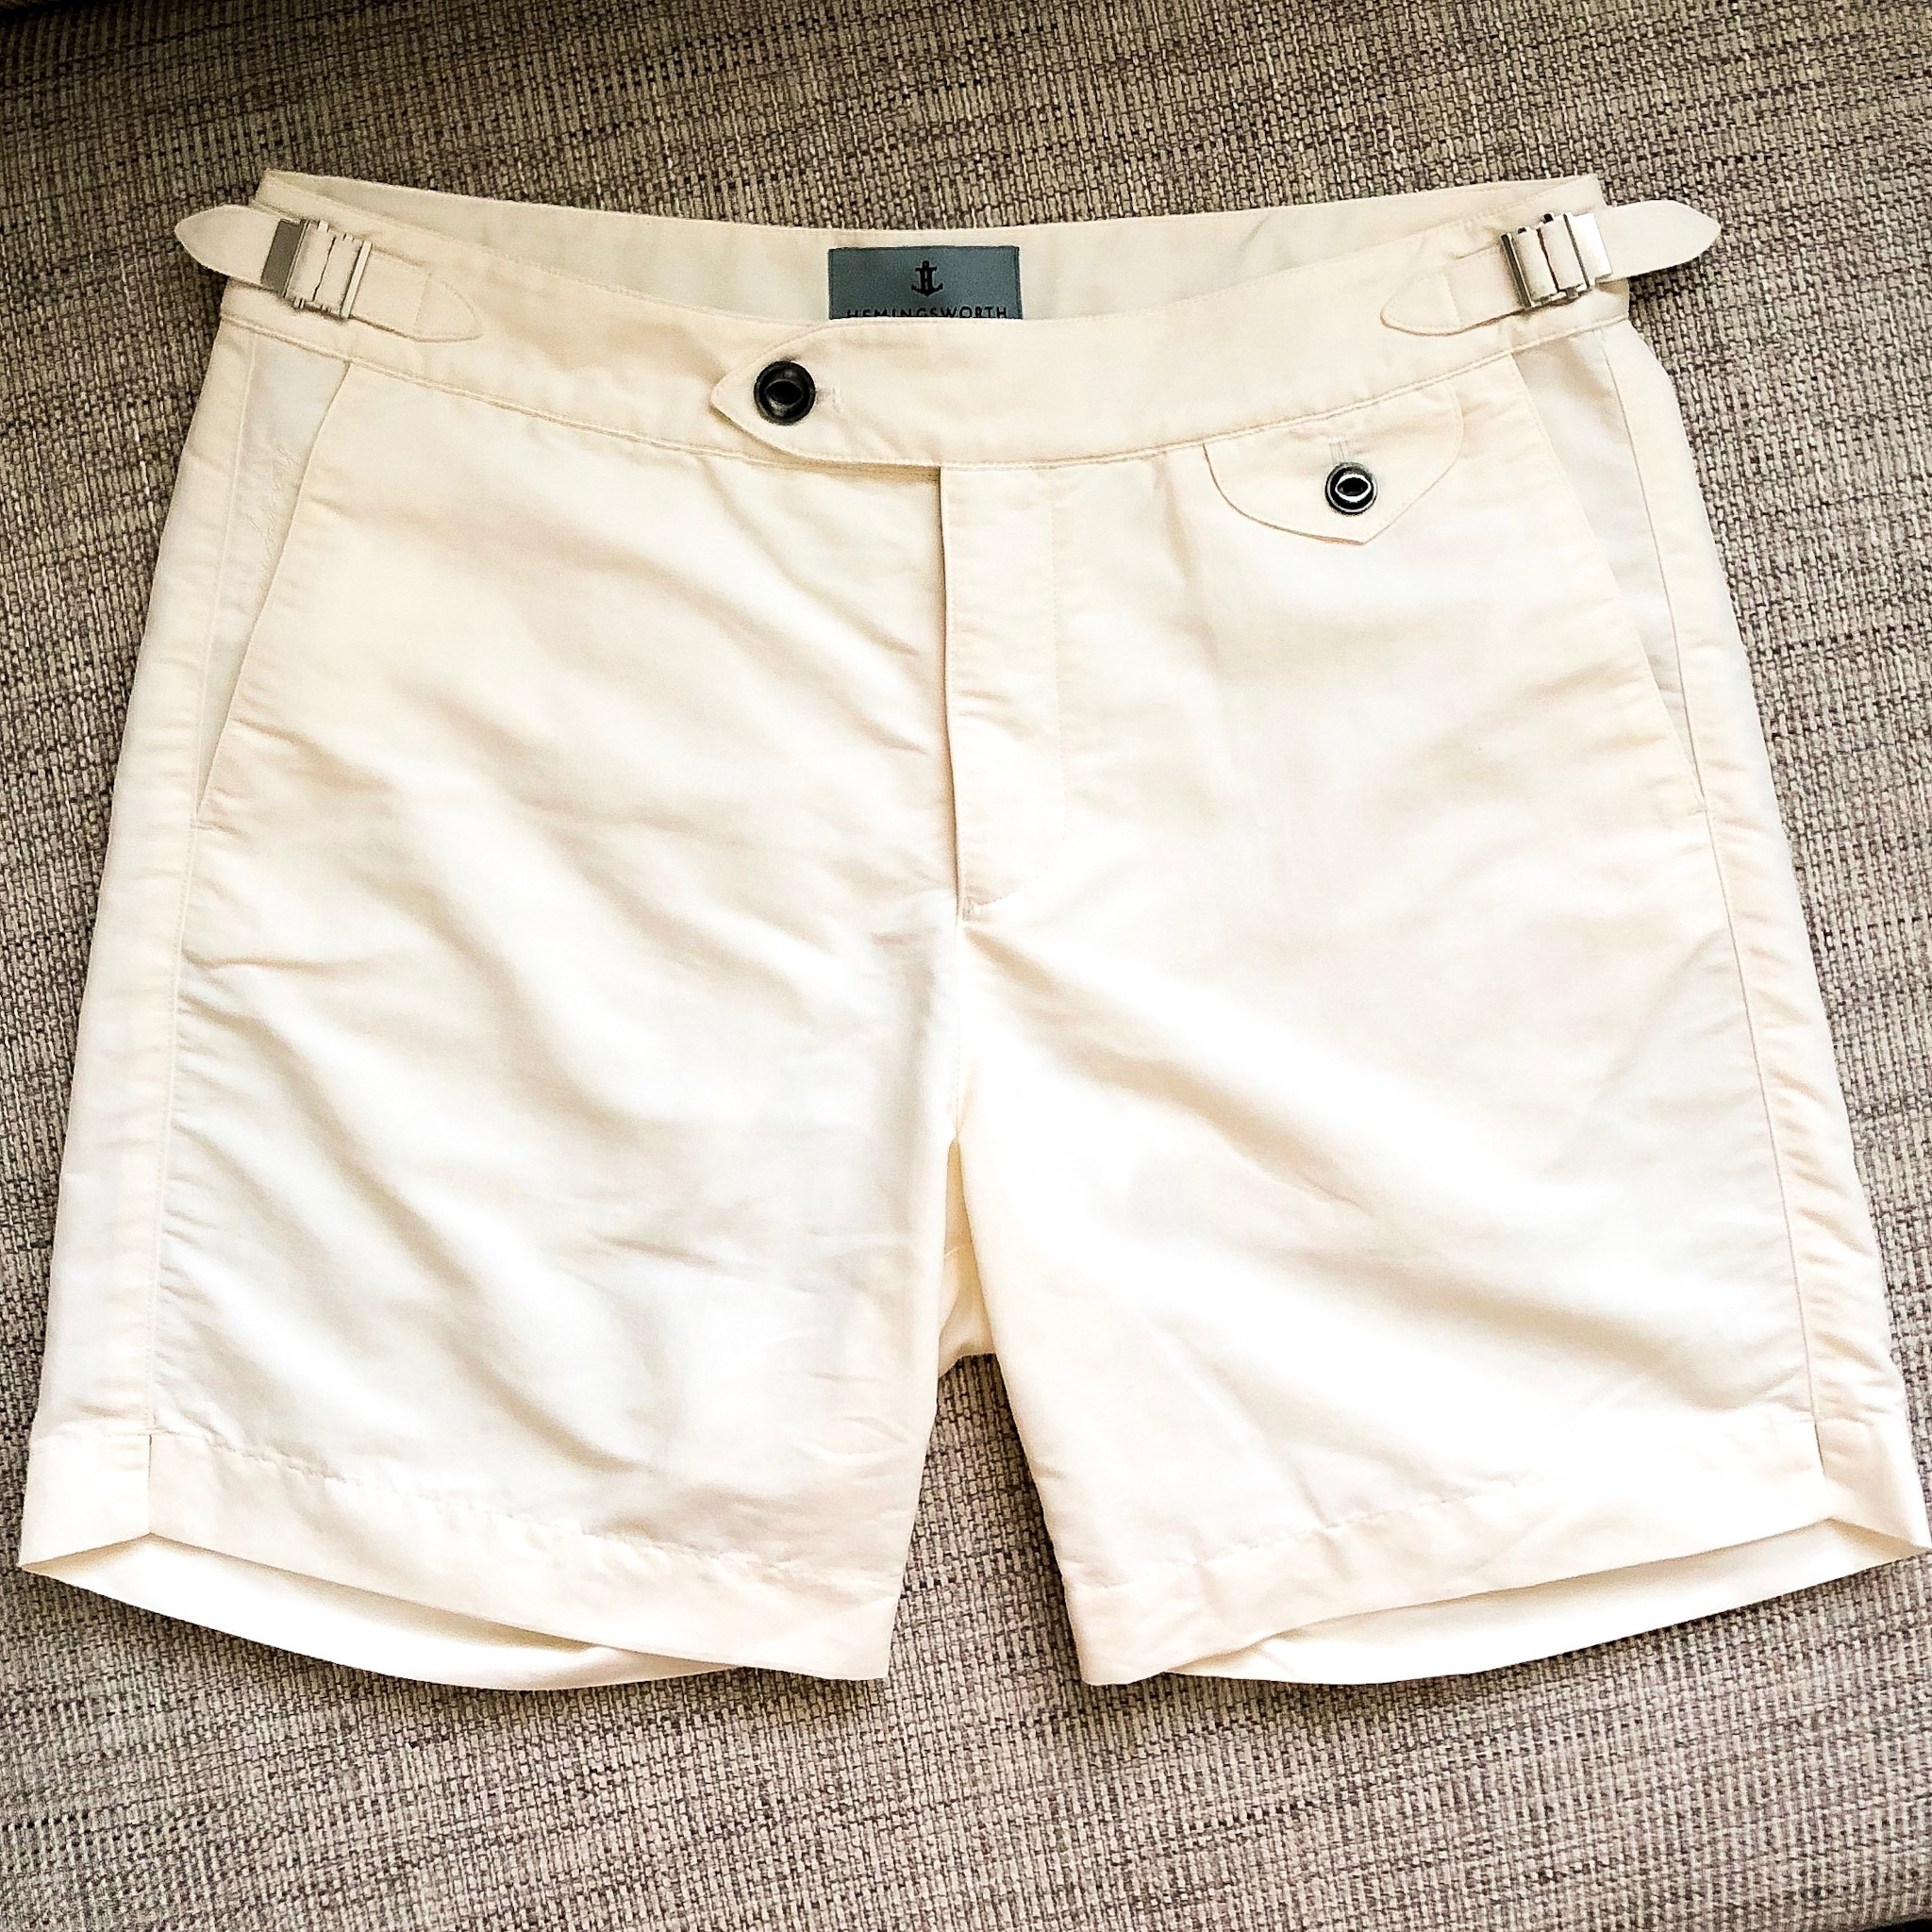 Hemingsworth Clipper swim short, pure white